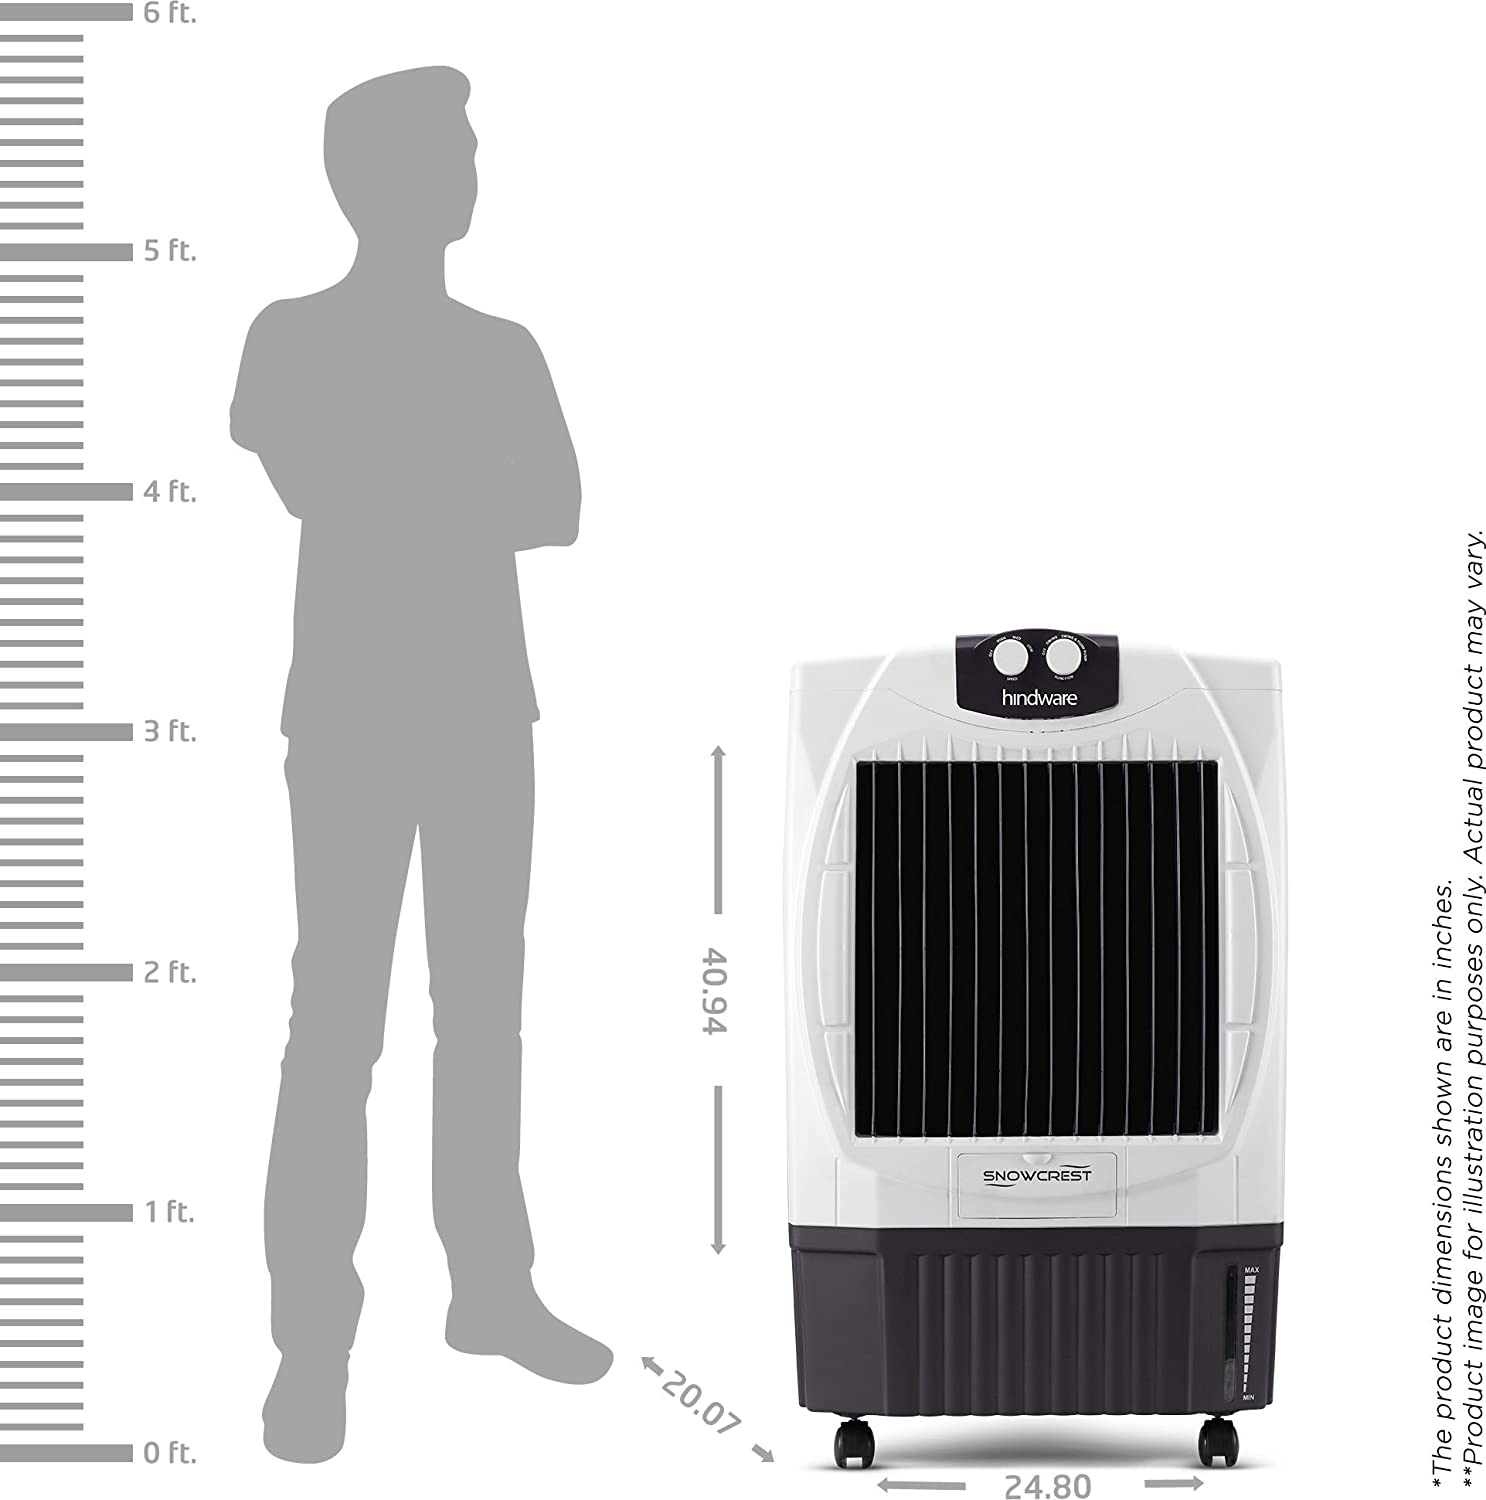 Hindware 190 snowcrest 50 w desert cd 165001wbr 50 litre air cooler hindware 190 snowcrest 50 w desert cd 165001wbr 50 litre air cooler brown amazon home kitchen fandeluxe Image collections